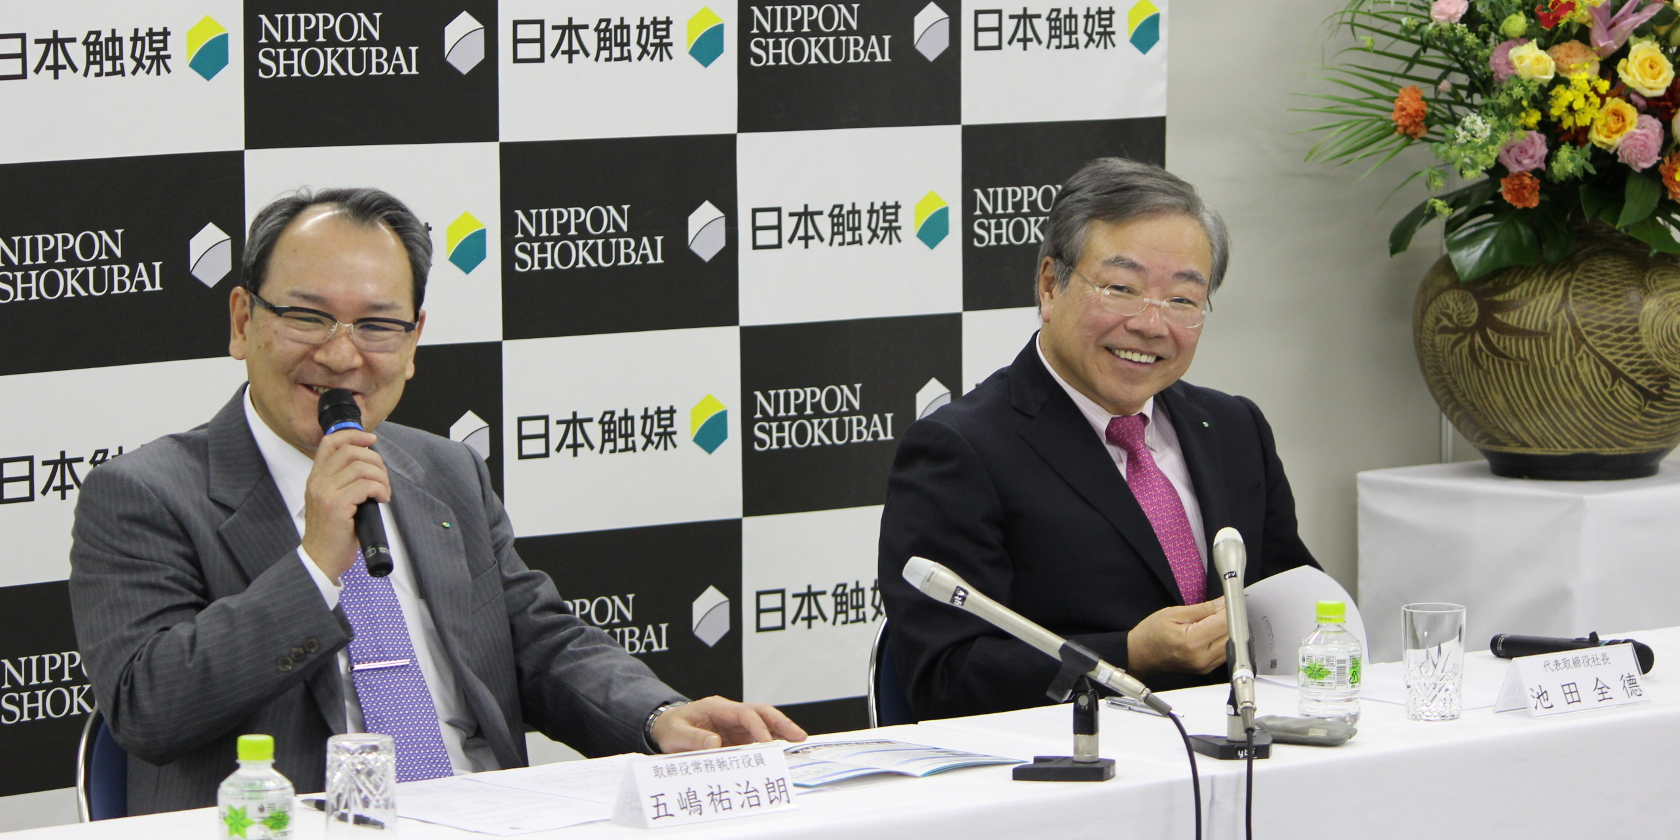 Incoming Nippon Shokubai President Discusses Changing of the Guard